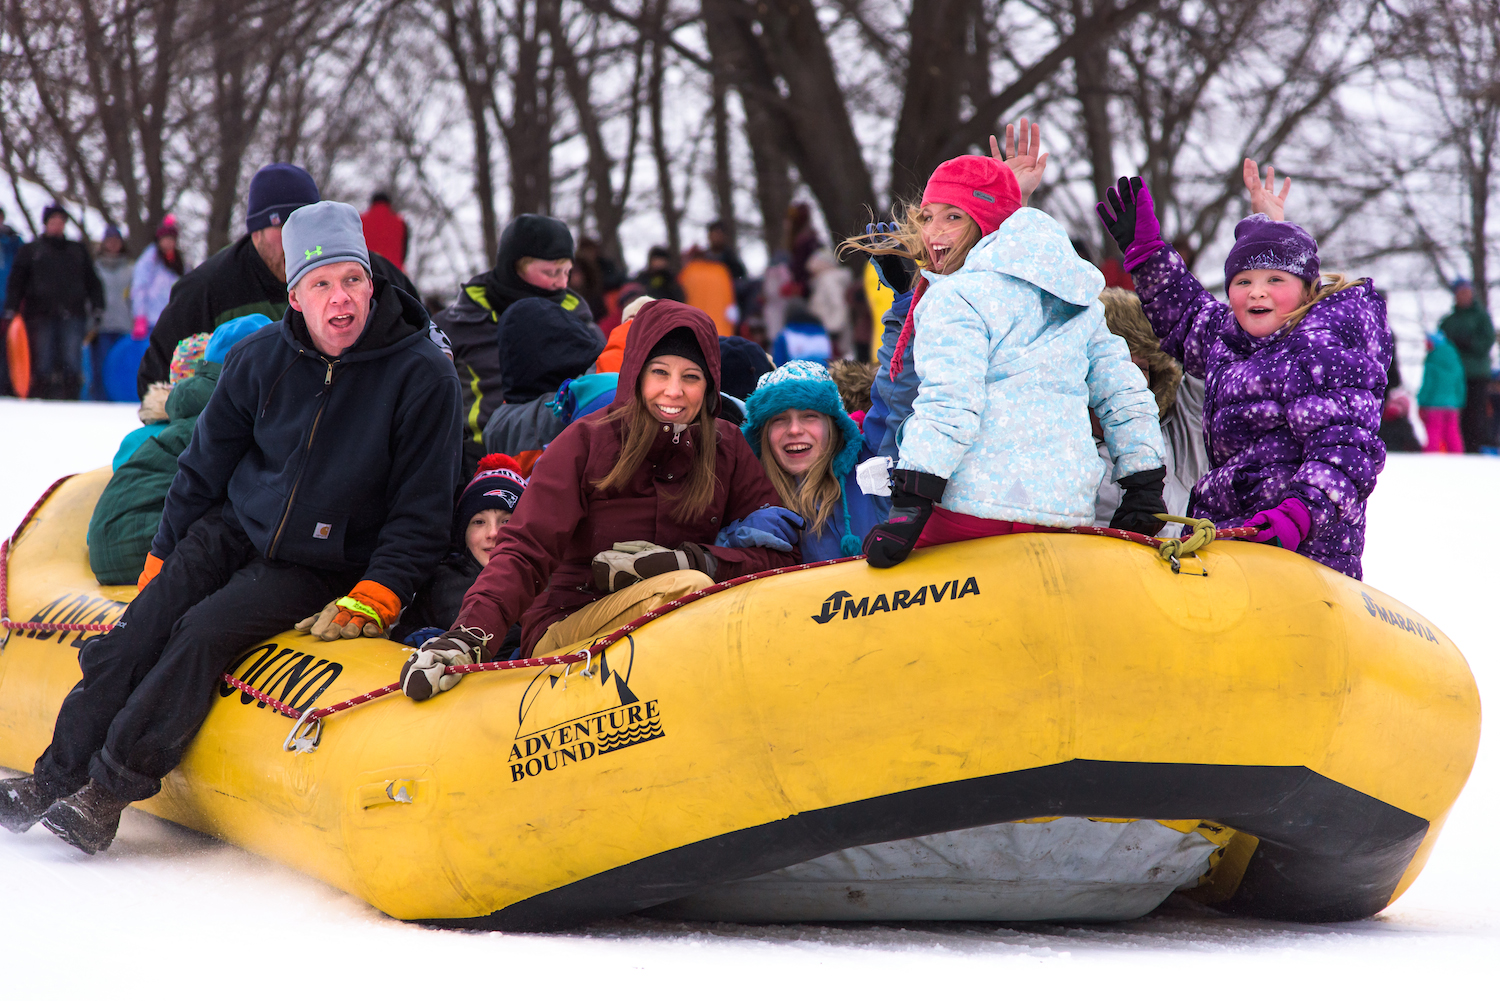 All aboard a snow raft at the WinterKids Welcome to Winter Festival at Payson Park in Portland on January 23, 2016.